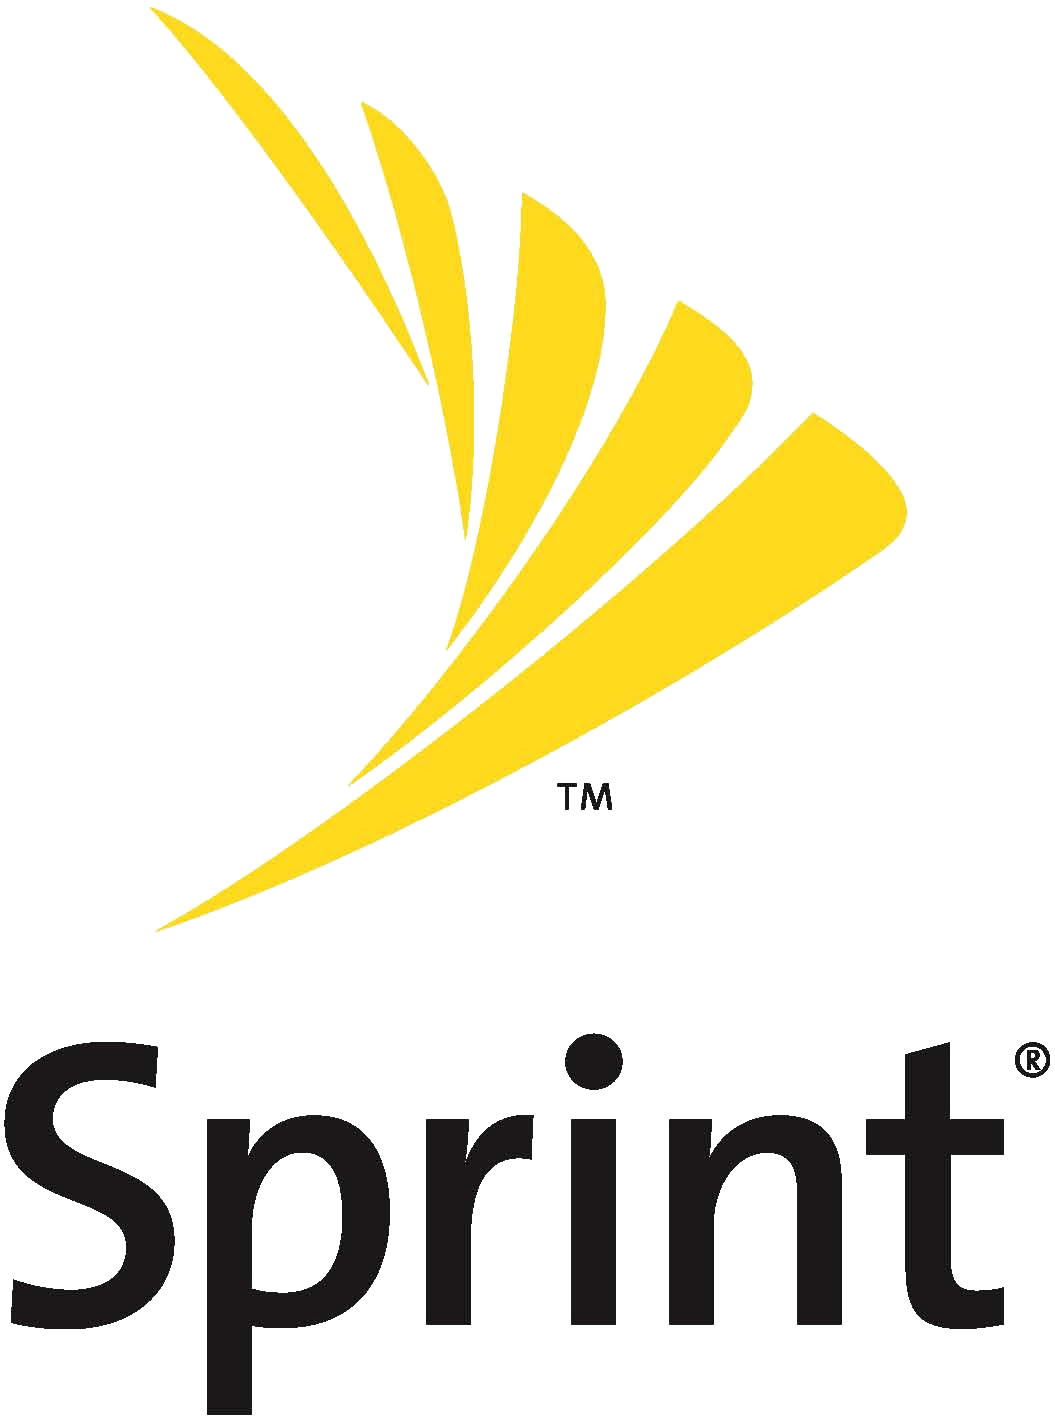 Sprint sues AT&T over 5G E false advertising and deceptive practices